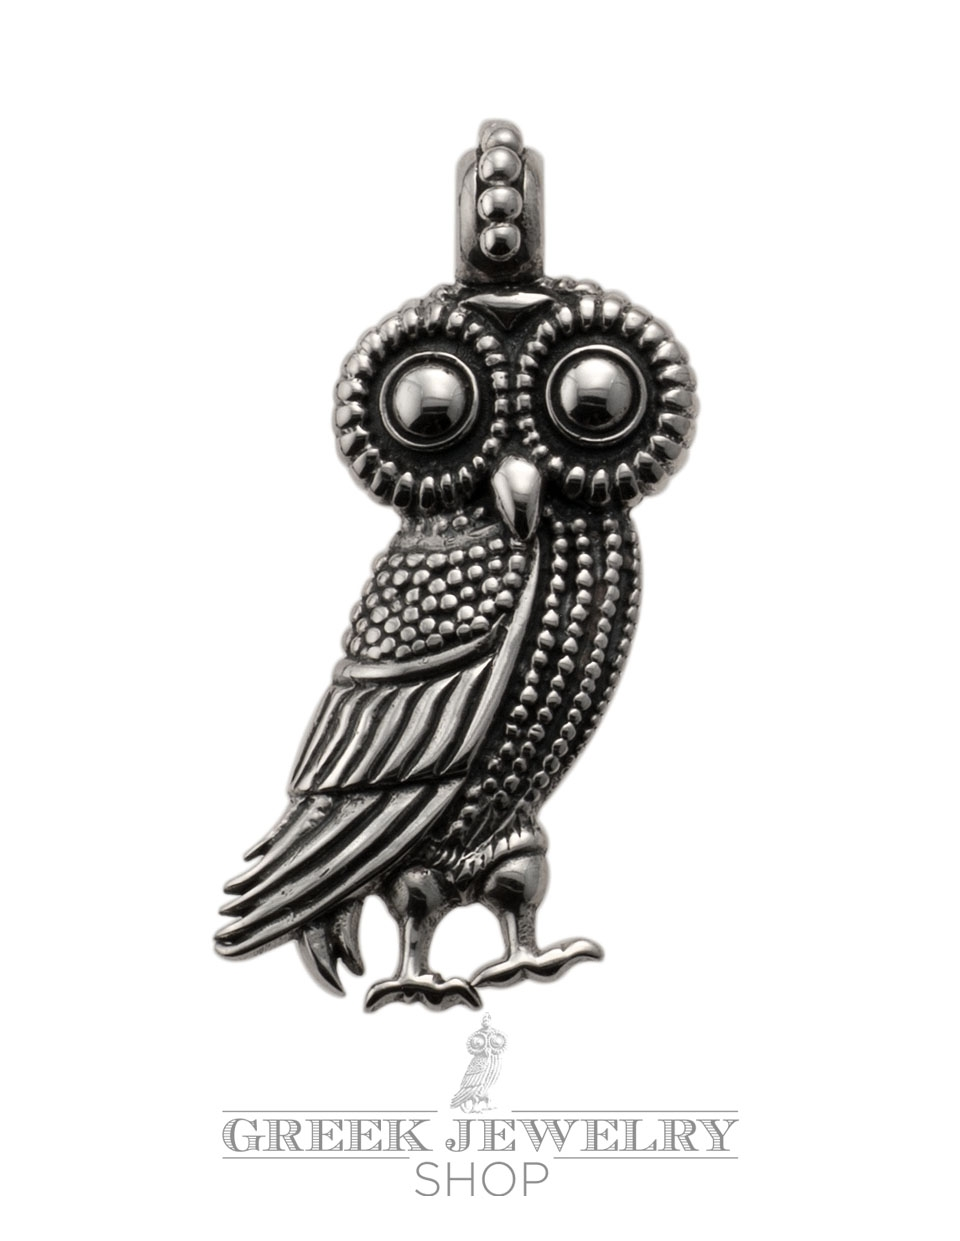 Greek silver pendants ancient coins symbols jewelry greek large athens wise owl pendant ancient jewelry reproductions from greek jewelry shop audiocablefo